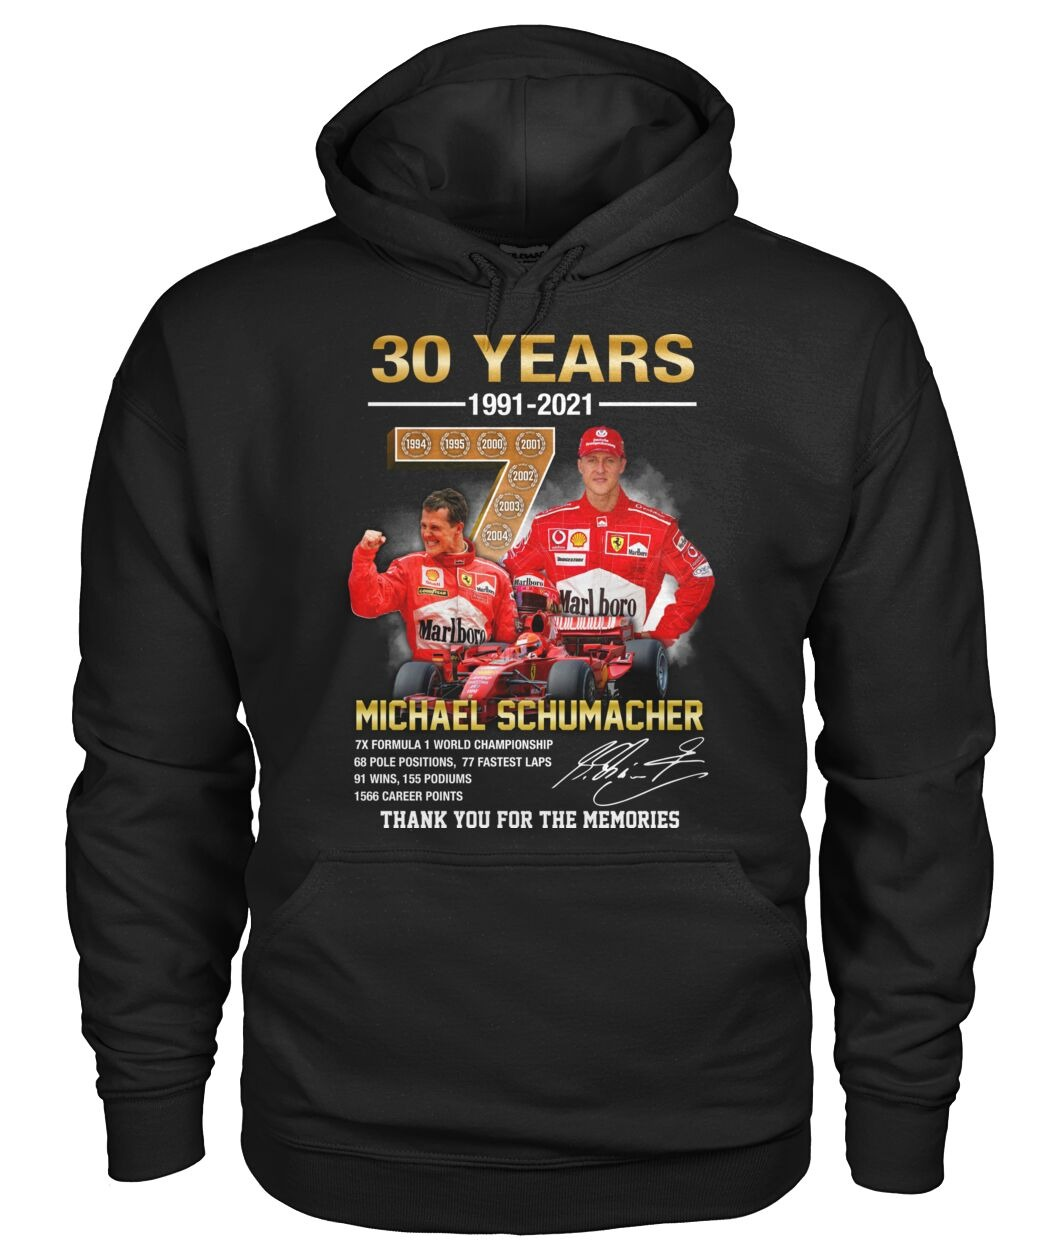 Michael schumacher 30 years thank you for the memories hoodie